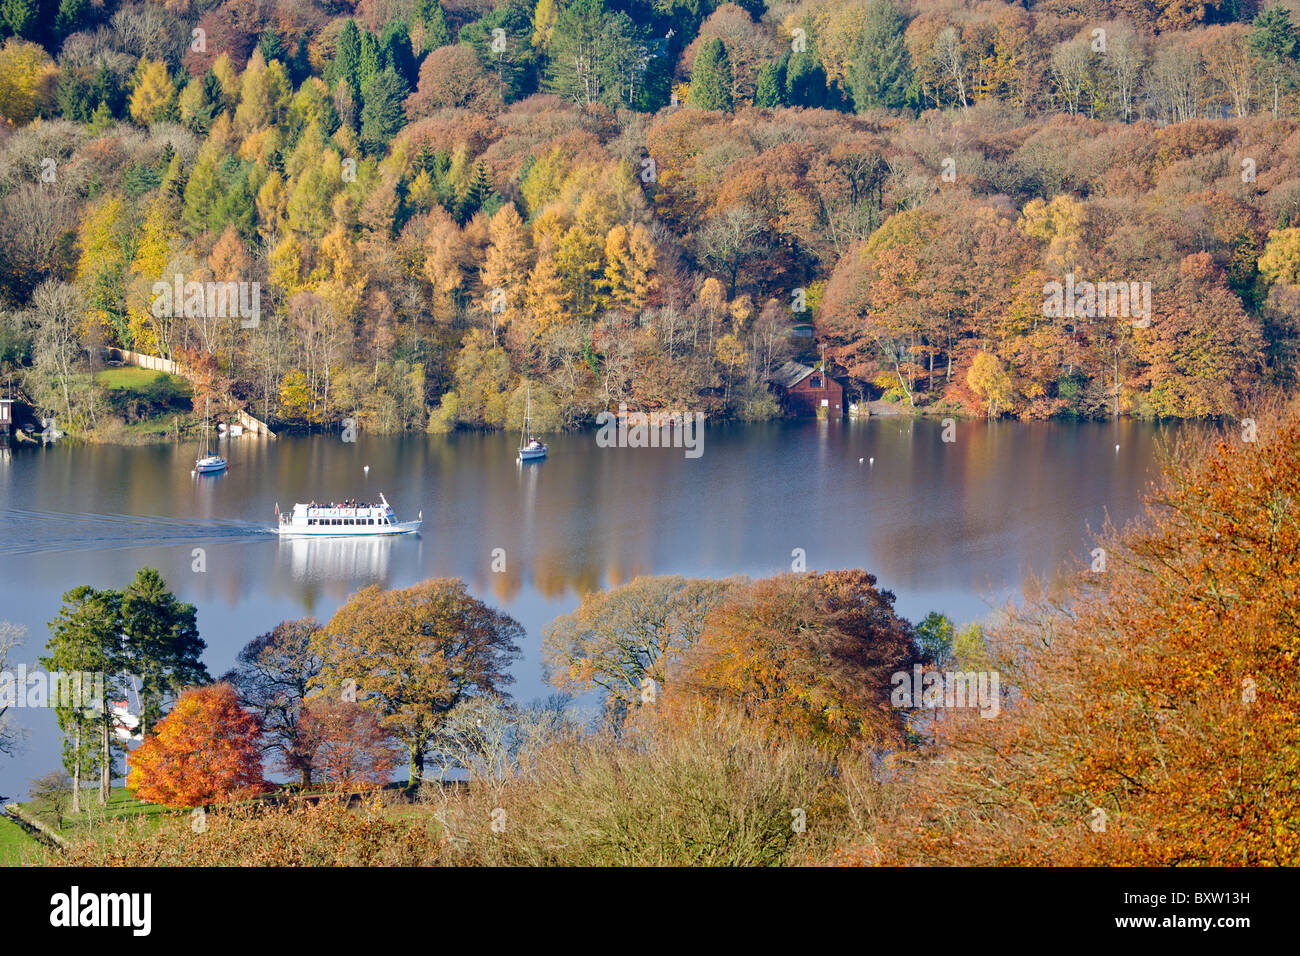 Tour Boat on Lake Windermere in Autumn, Cumbria, England - Stock Image